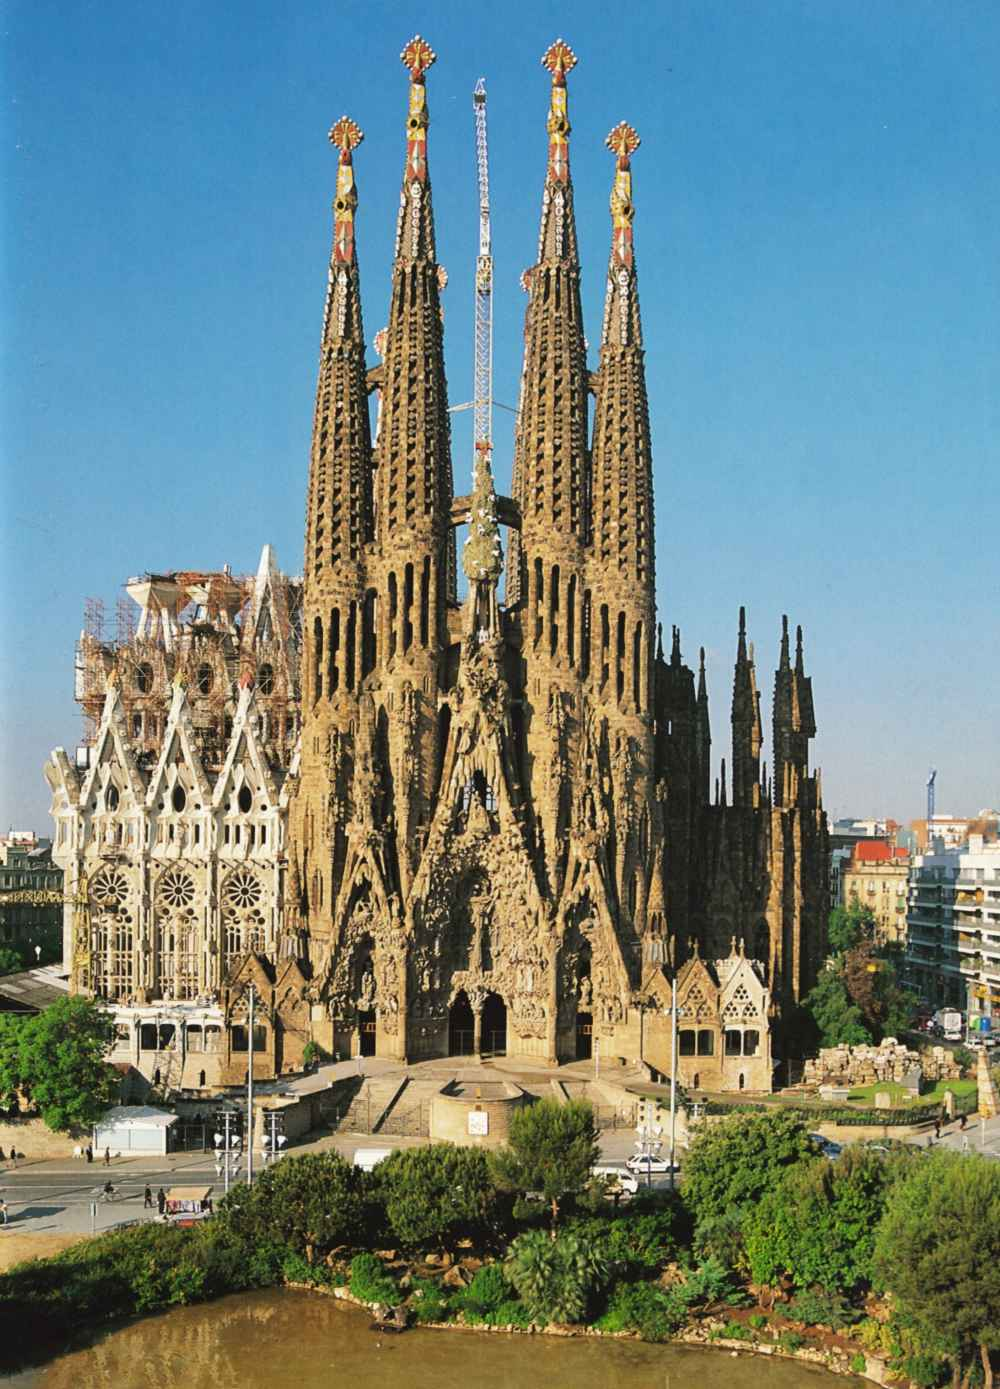 routes sagrada familia